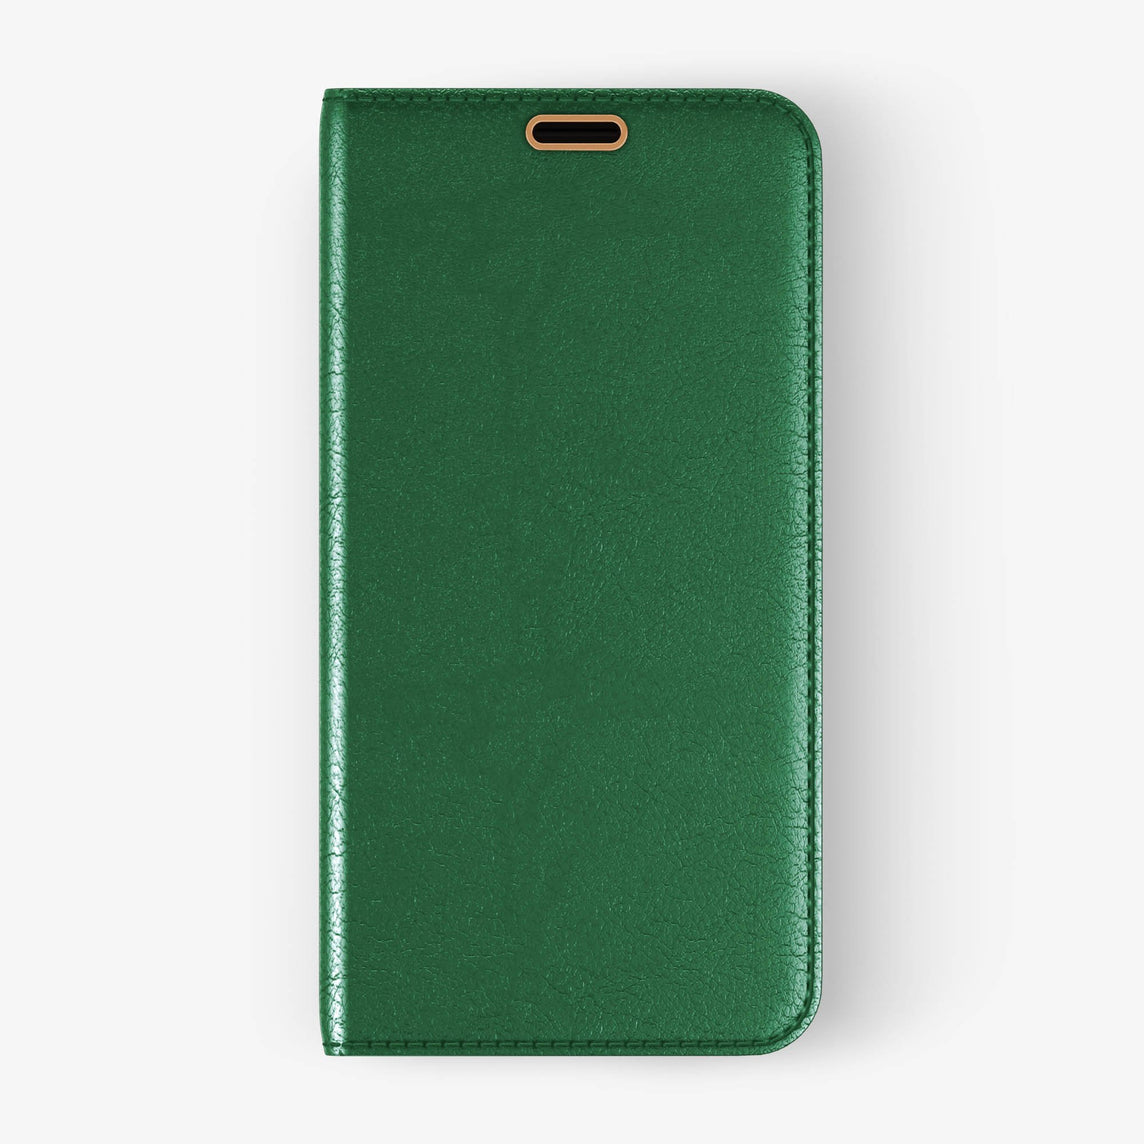 Green Calfskin iPhone Folio Case for iPhone XS Max finishing rose gold - Hadoro Luxury Cases - img1